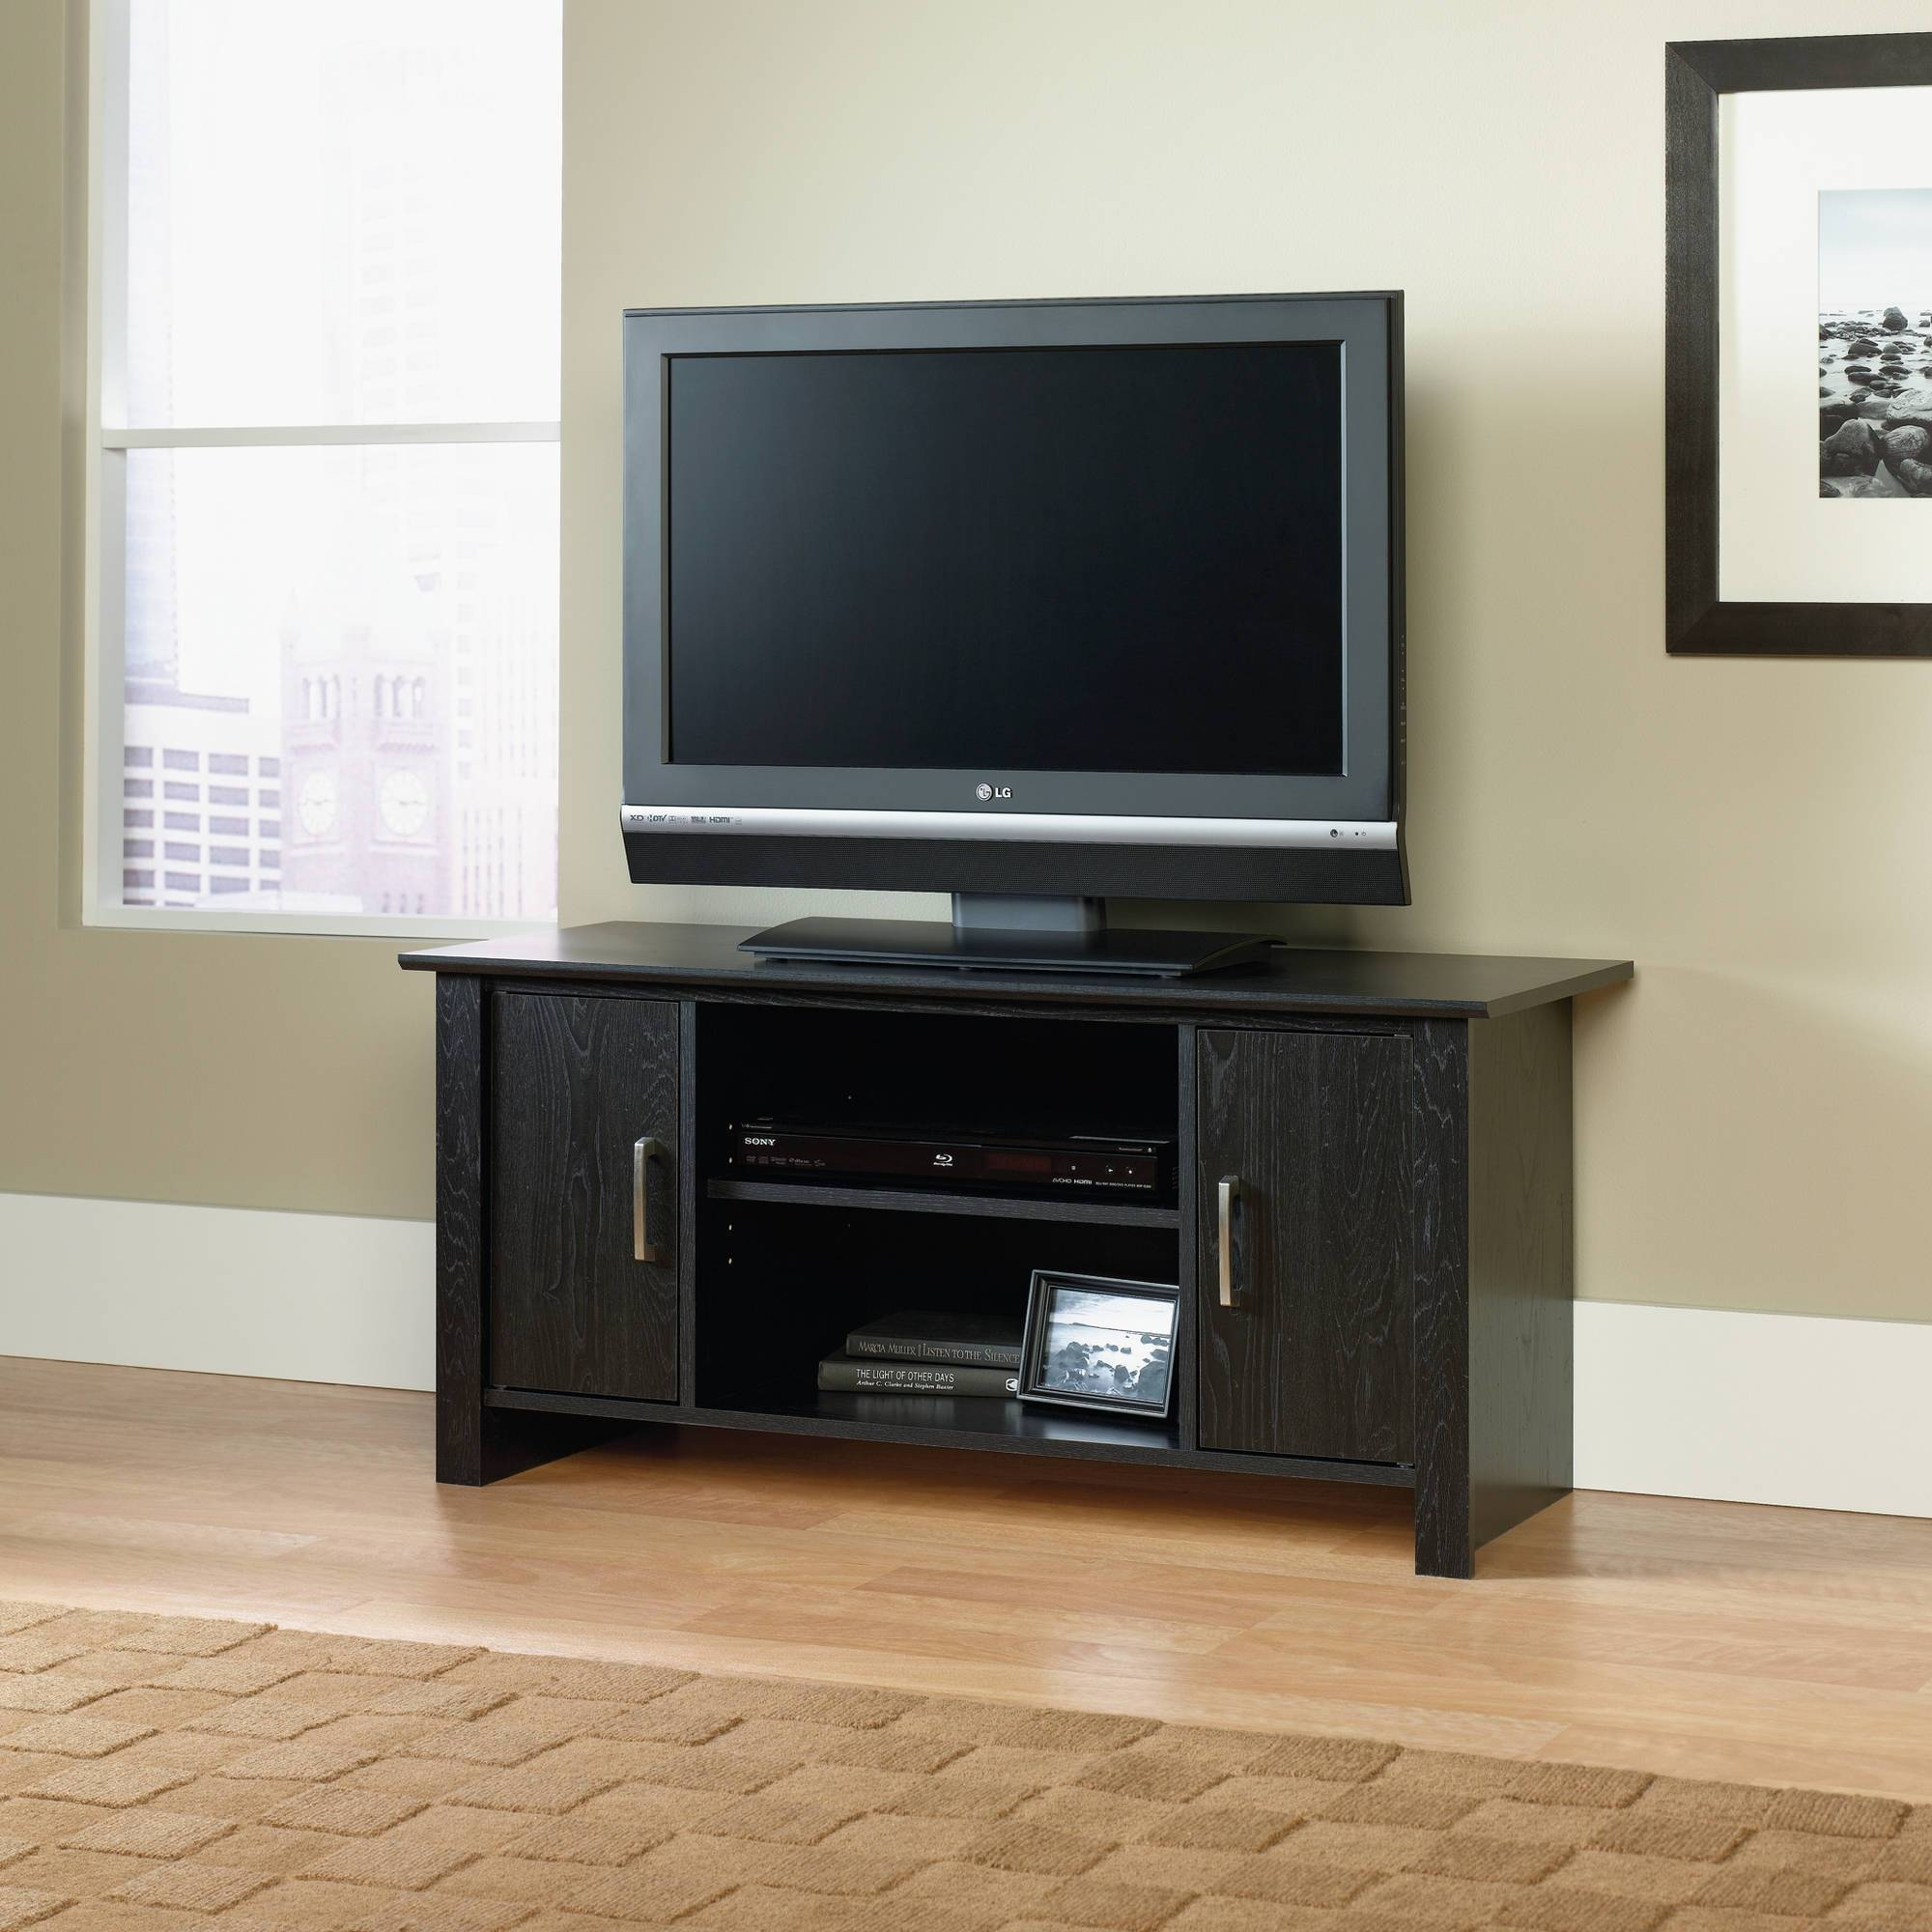 Corner Tv Stands - Walmart for Triangular Tv Stand (Image 2 of 15)